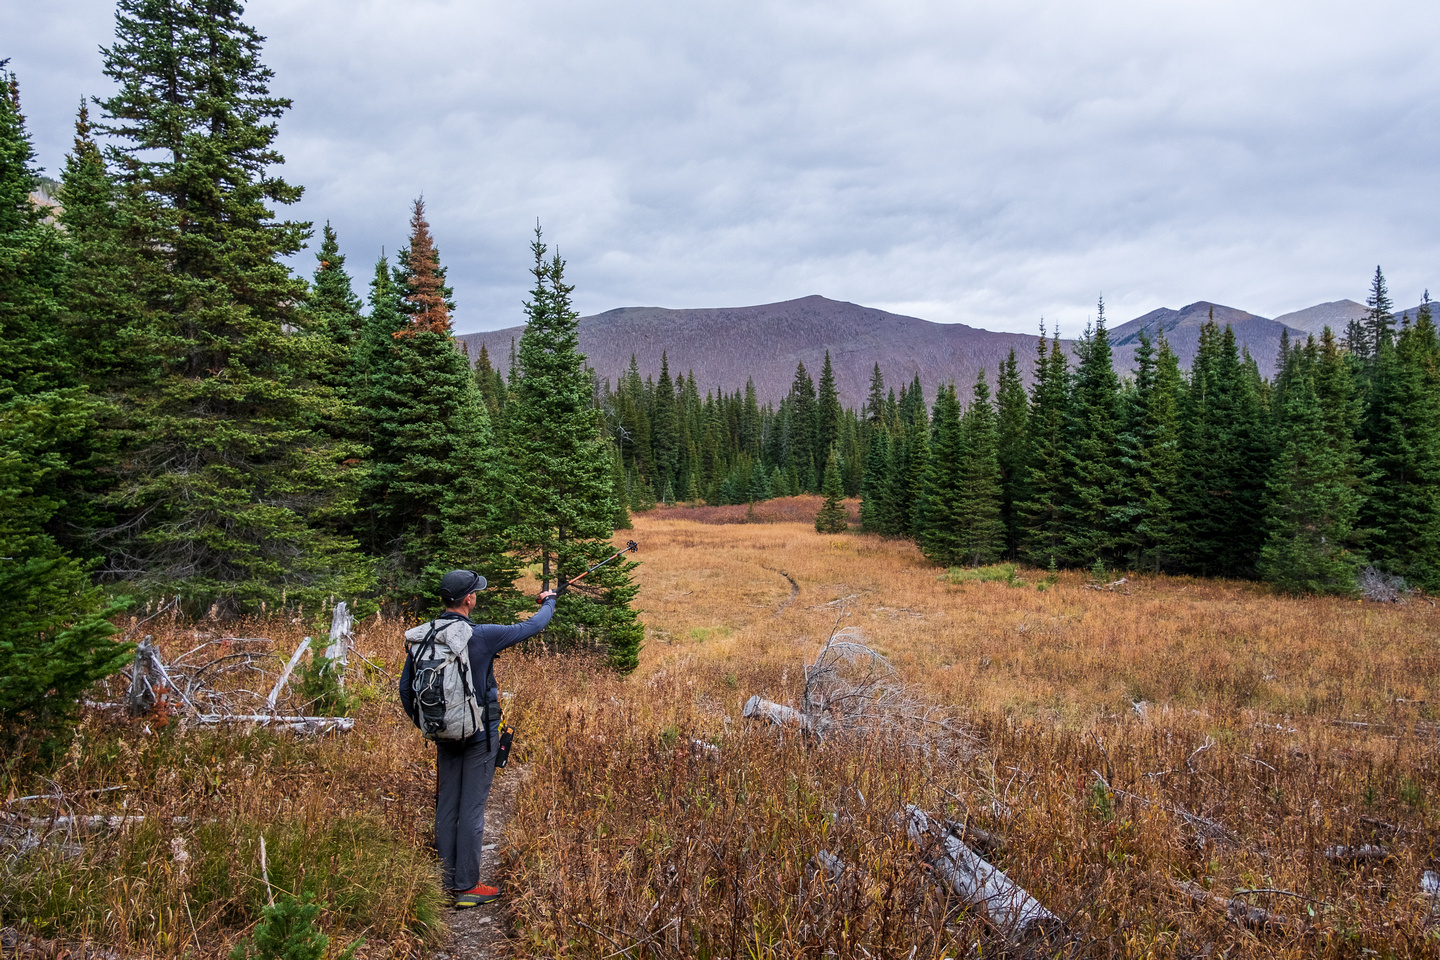 Hiking the Tamarack trail / GDT from Lone Lake to the South Kootenay Pass trail.